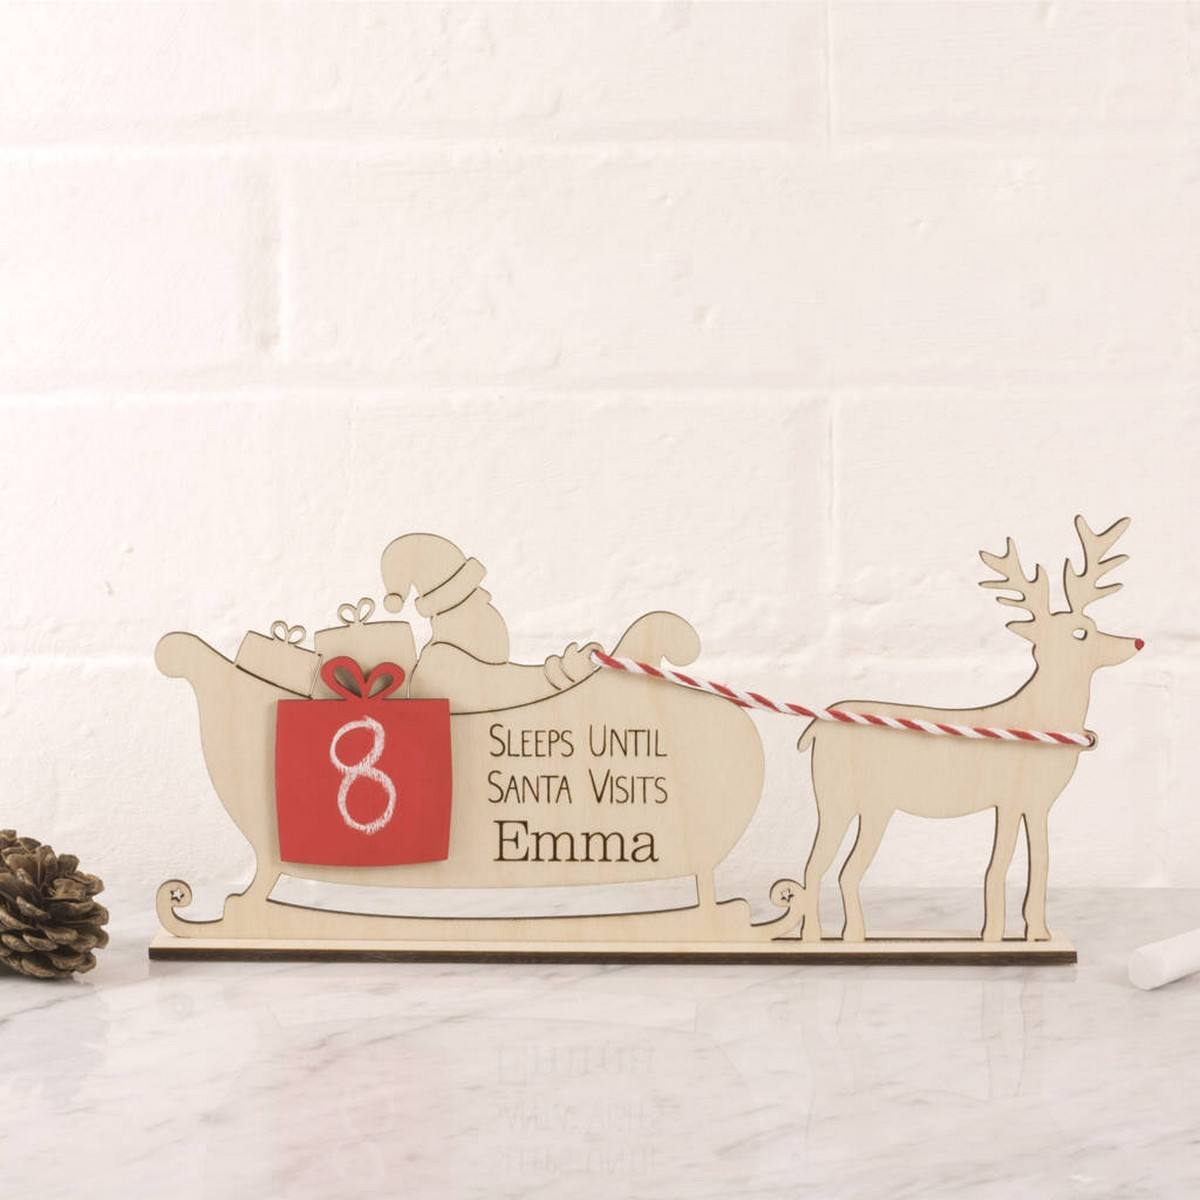 Are you already counting down the days to Christmas or New Year's Eve? Or perhaps you have something even bigger you're excited about, like a wedding or a baby on the way!